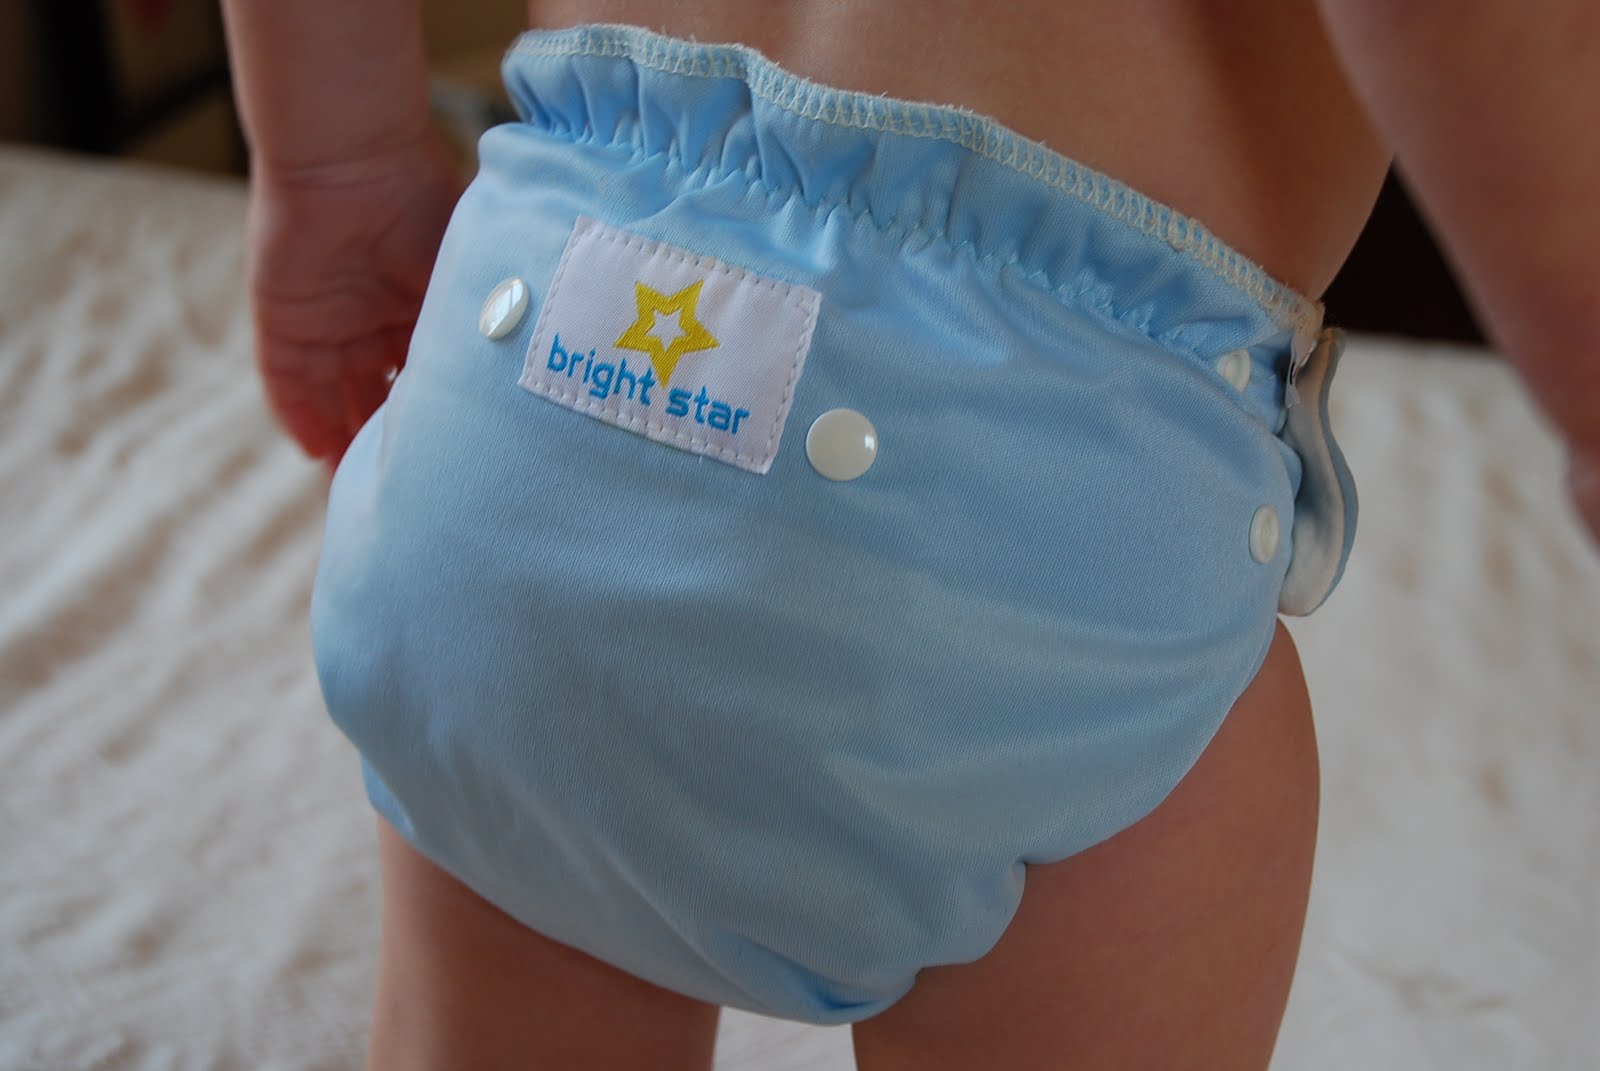 Bright%2BStar%2B002 The maker of Fishnoodles diapers has created a new diaper line called Bright ...